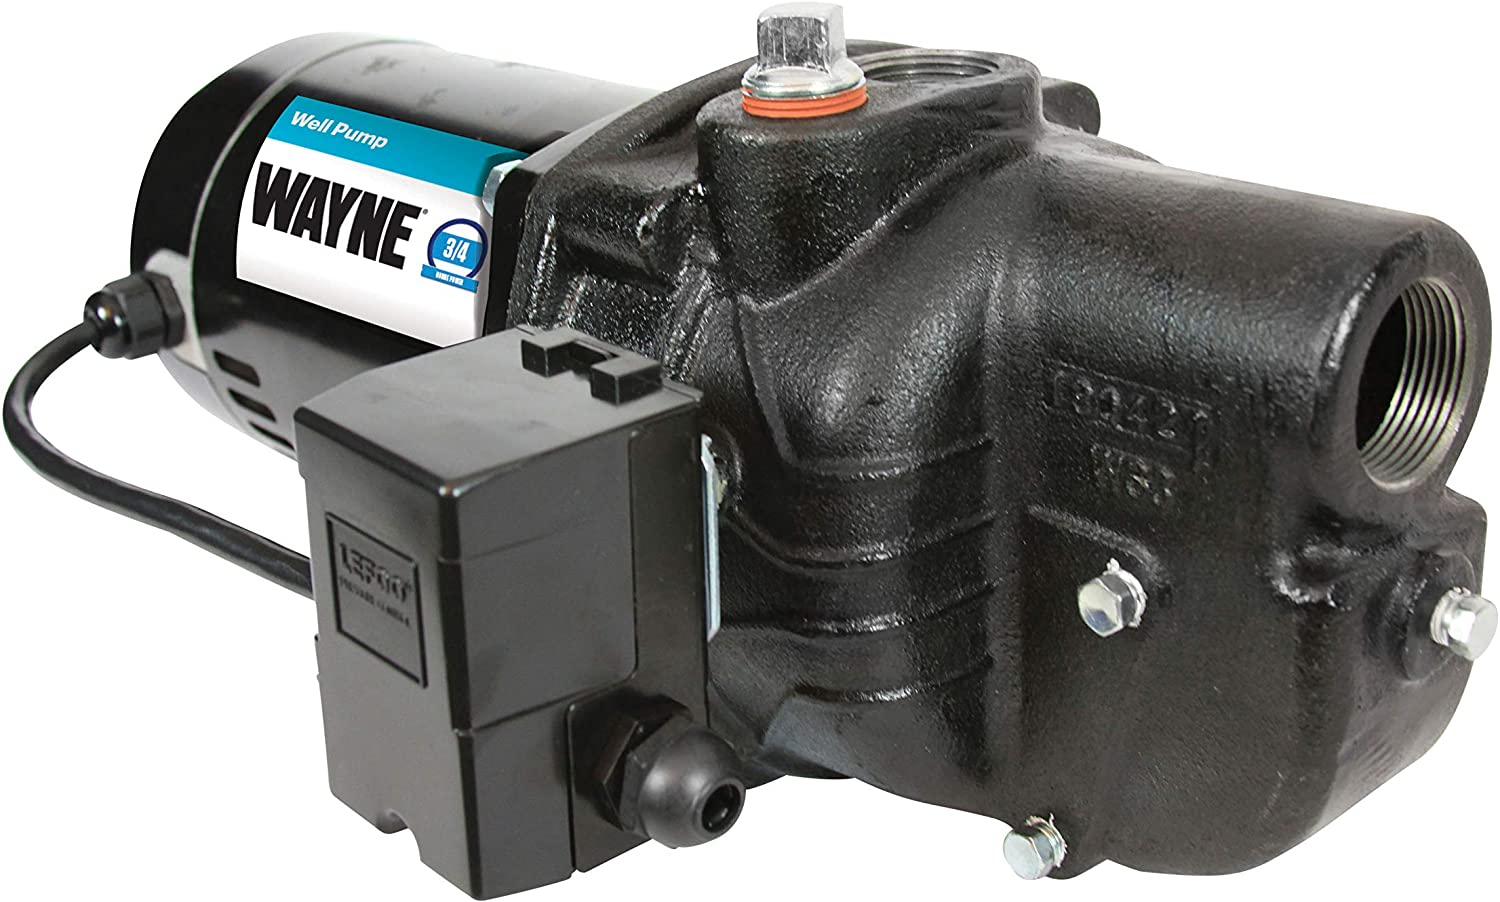 Wayne SWS75, 56914-WYN2, 3/4 HP Shallow Well Jet Pump, Black